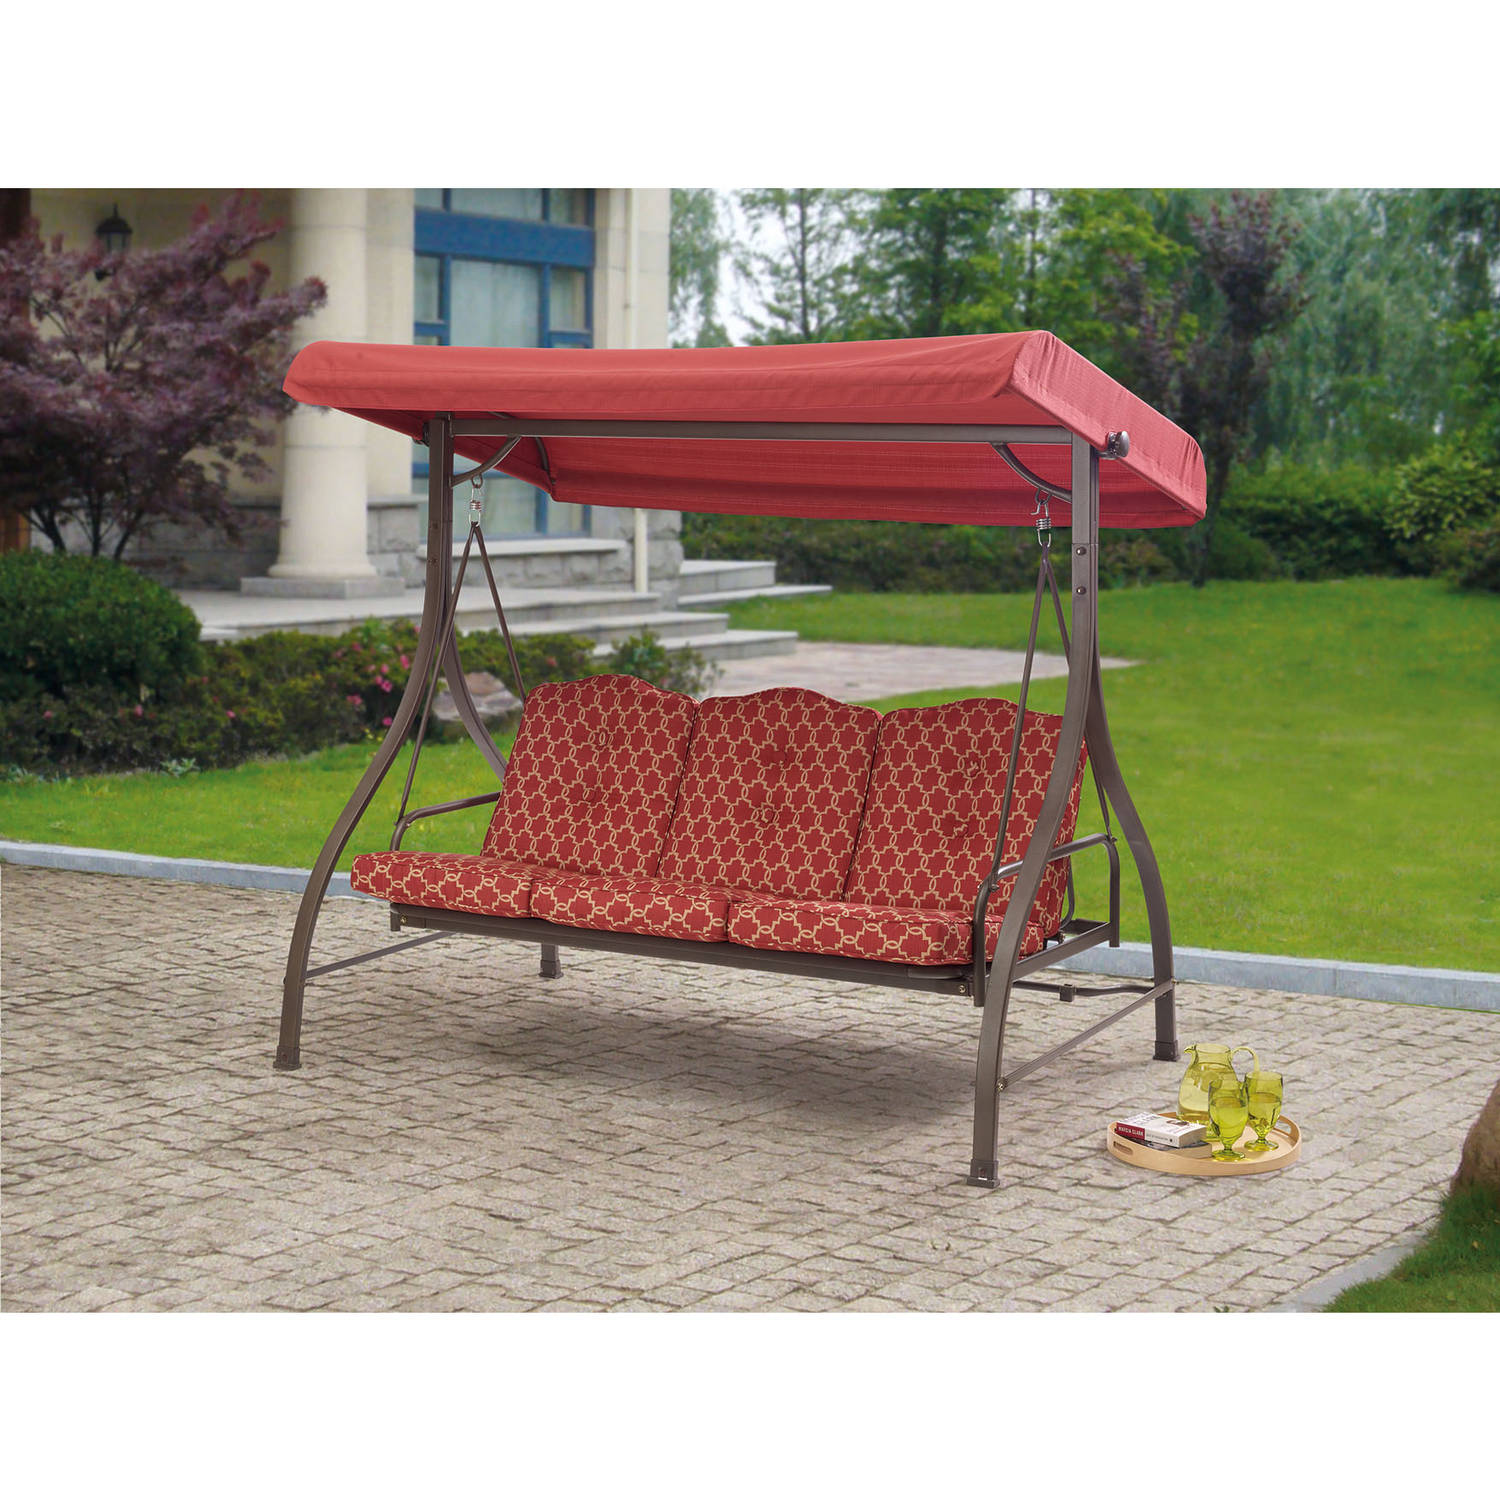 Mainstays Wentworth 3 Person Cushioned Canopy Porch Swing Bed   Walmart.com